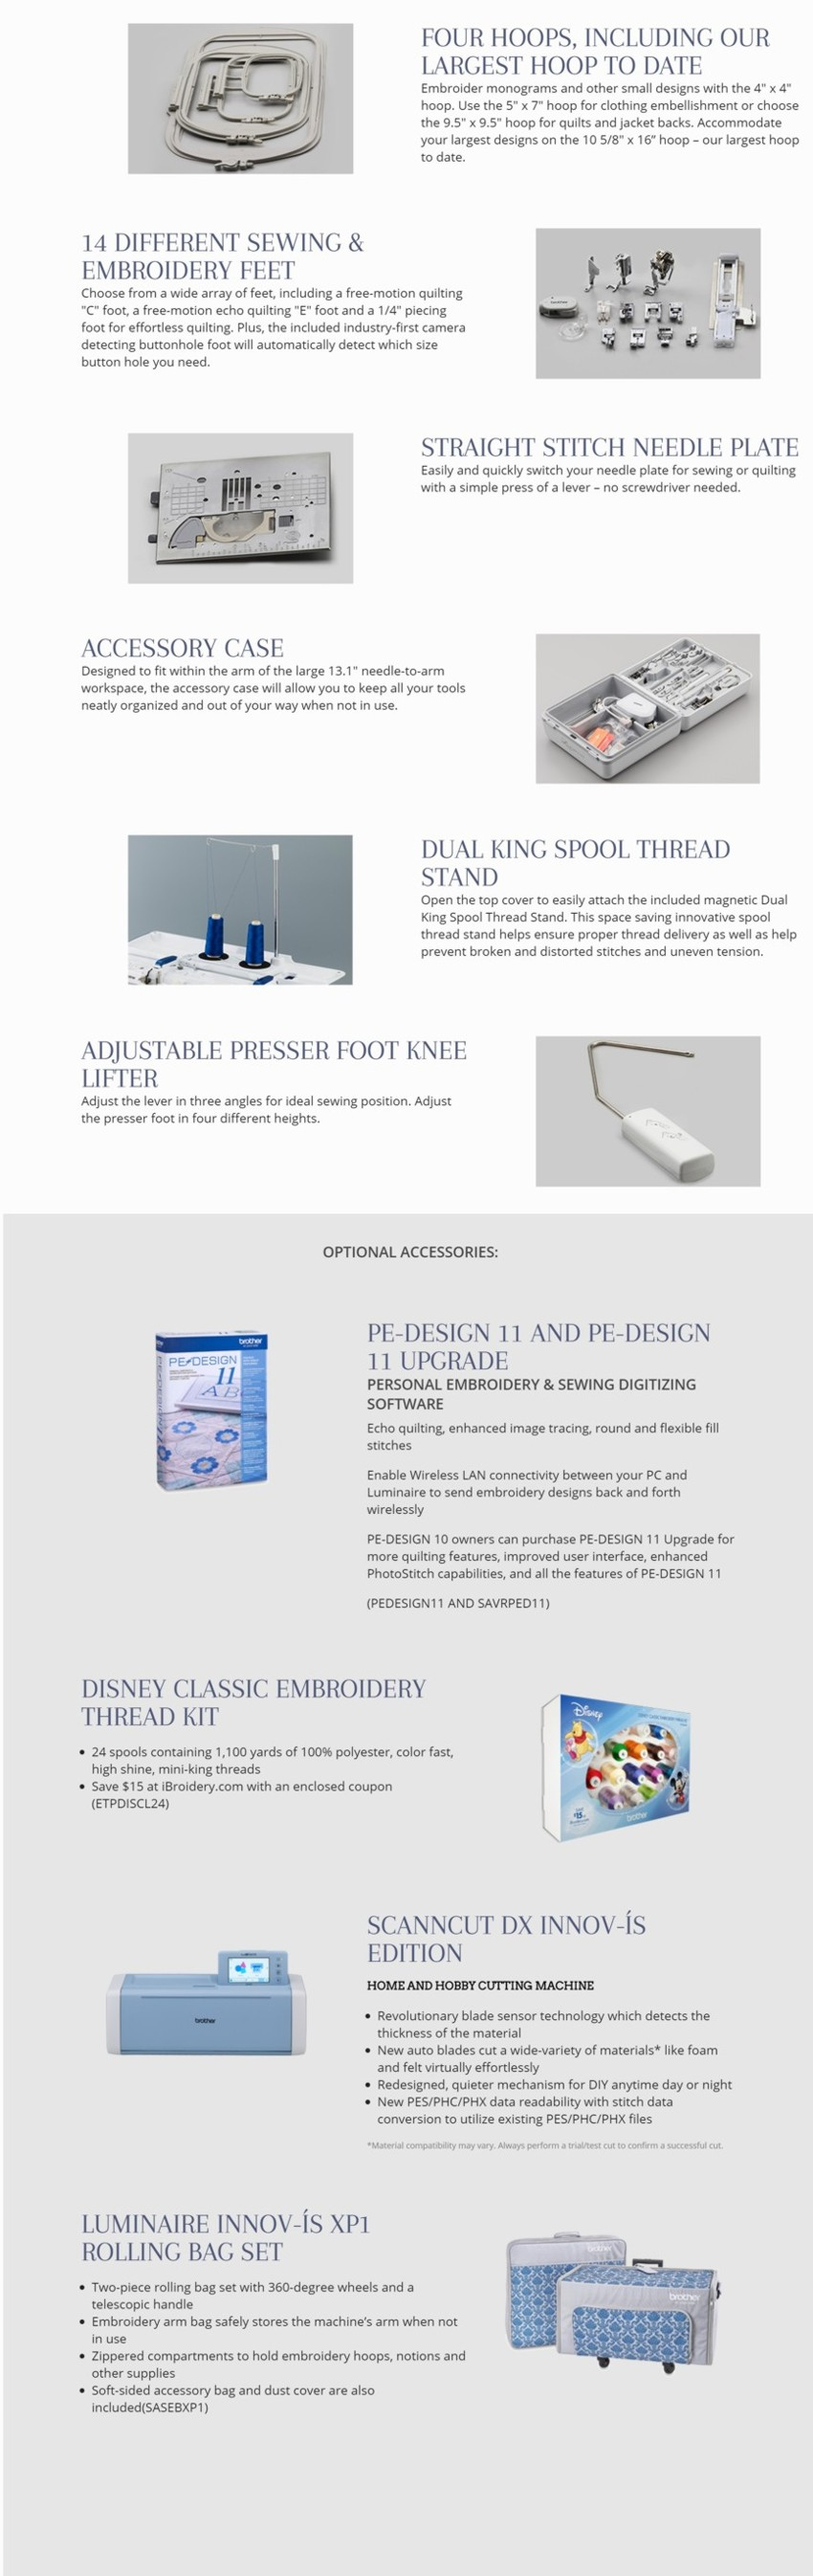 Luminaire Innov-is XP1 - Accessories